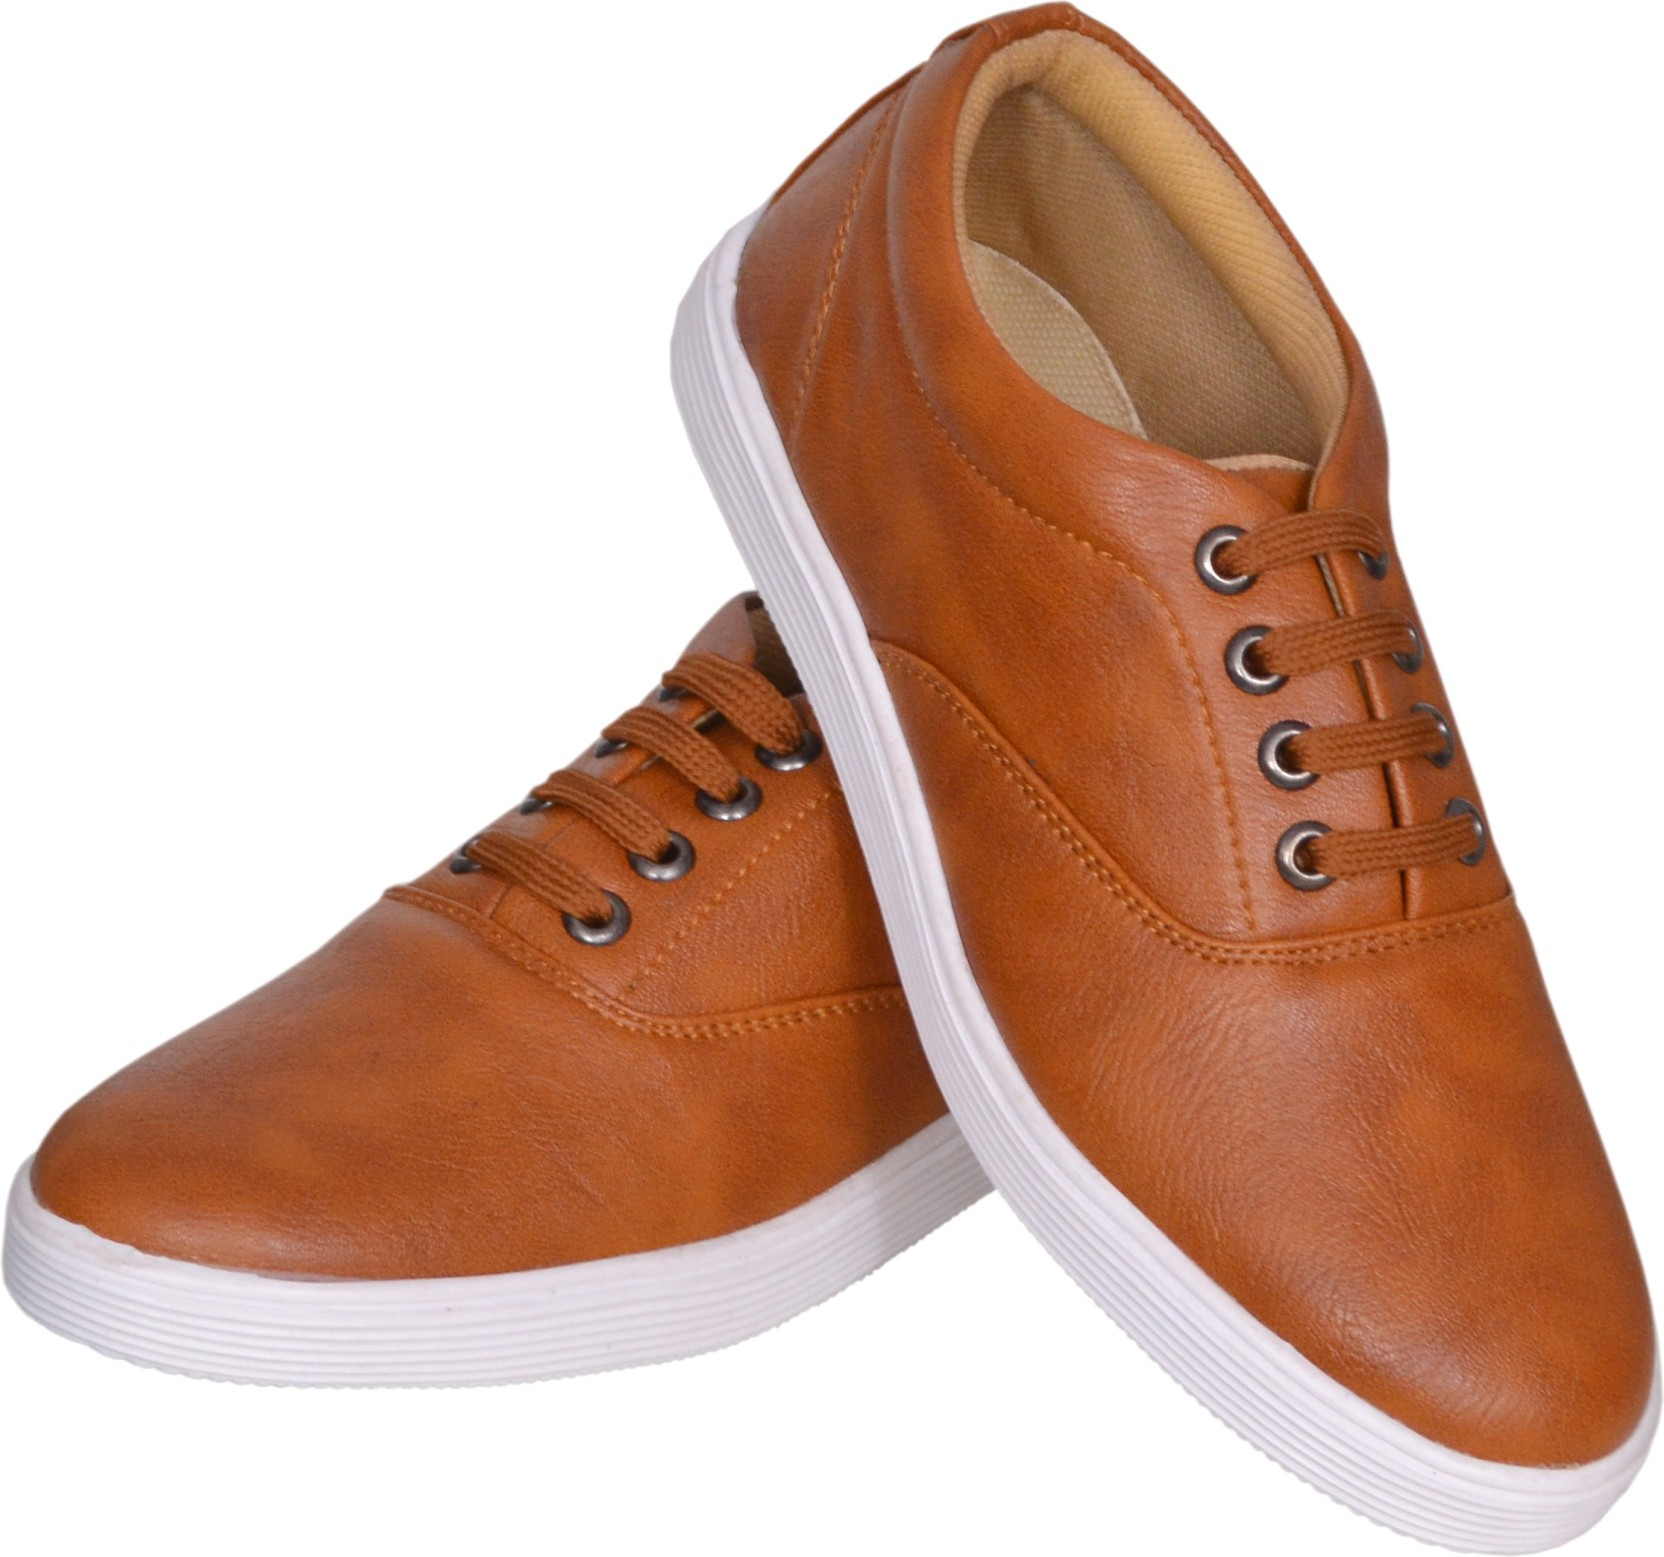 Sukun Casuals, Canvas Shoes - Buy Tan Color Sukun Casuals ...